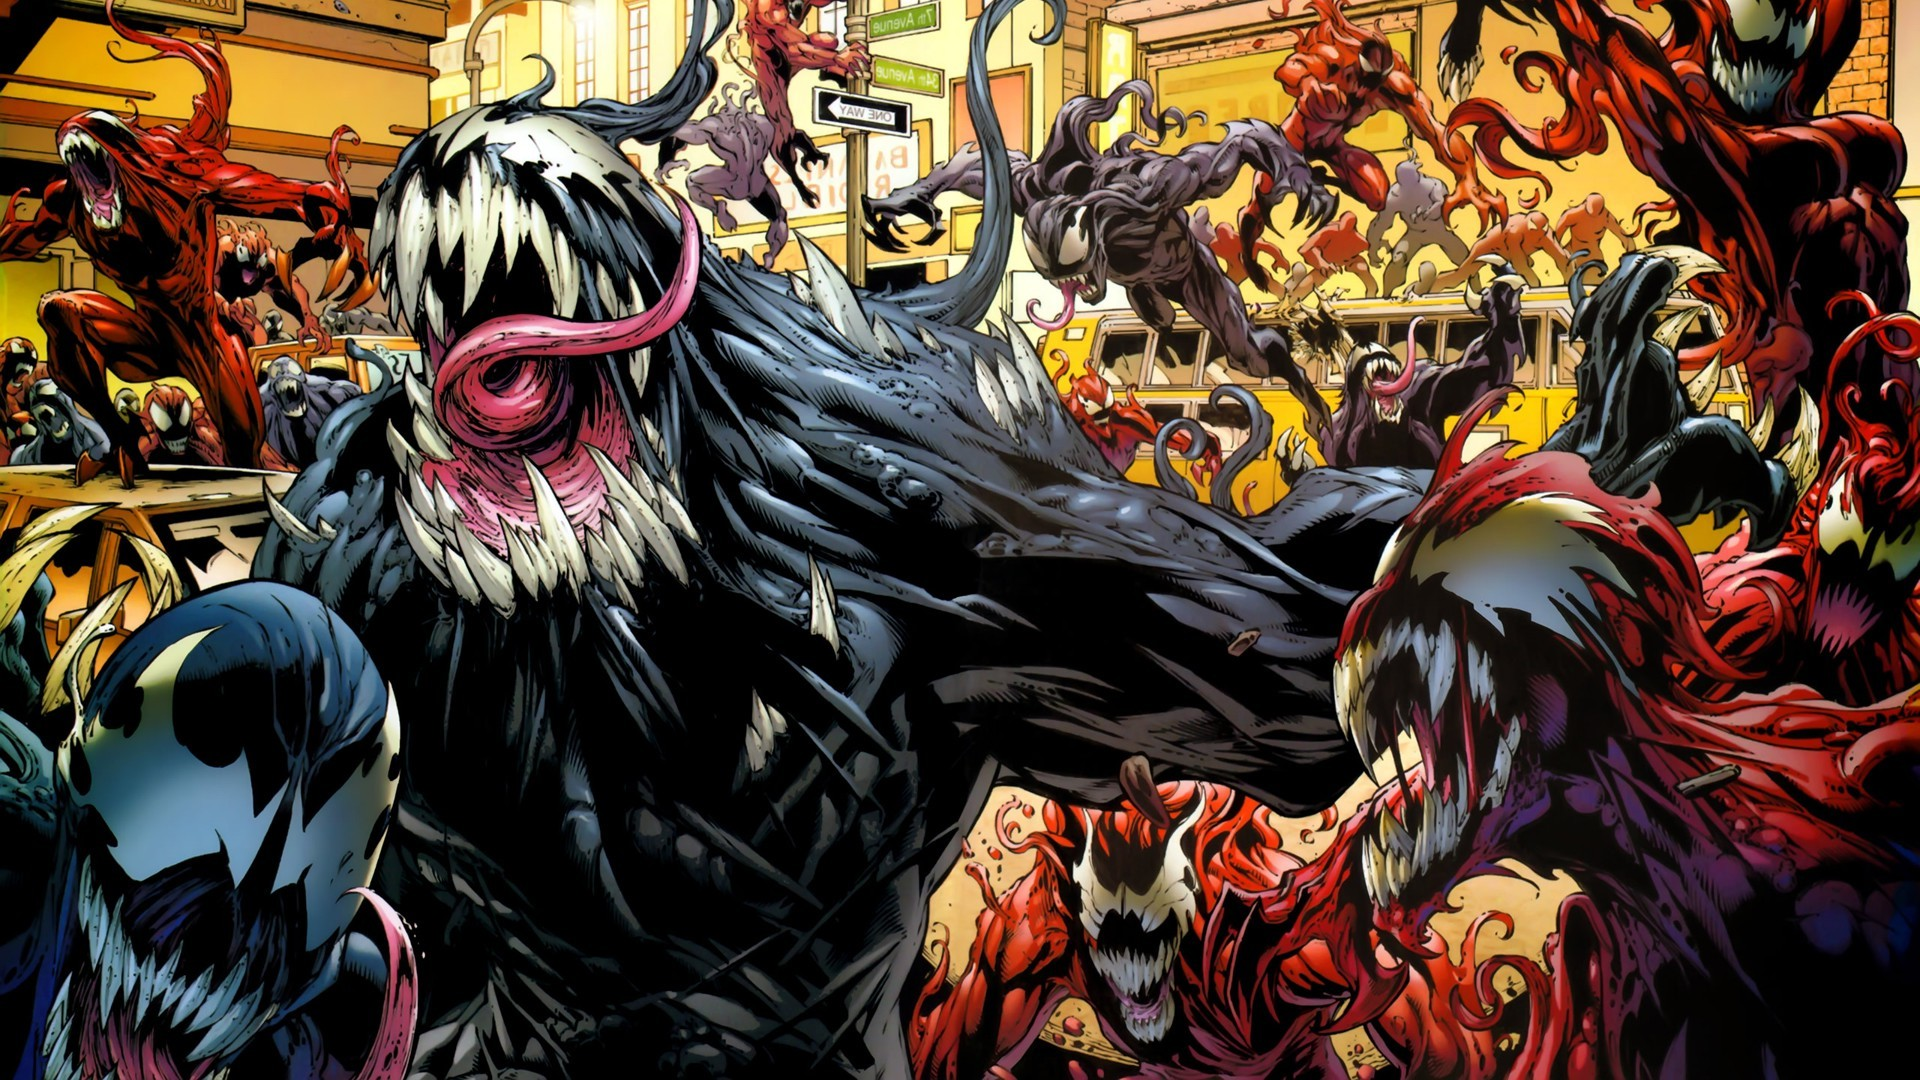 Carnage Wallpapers, Images, Wallpapers of Carnage in 100% Quality .